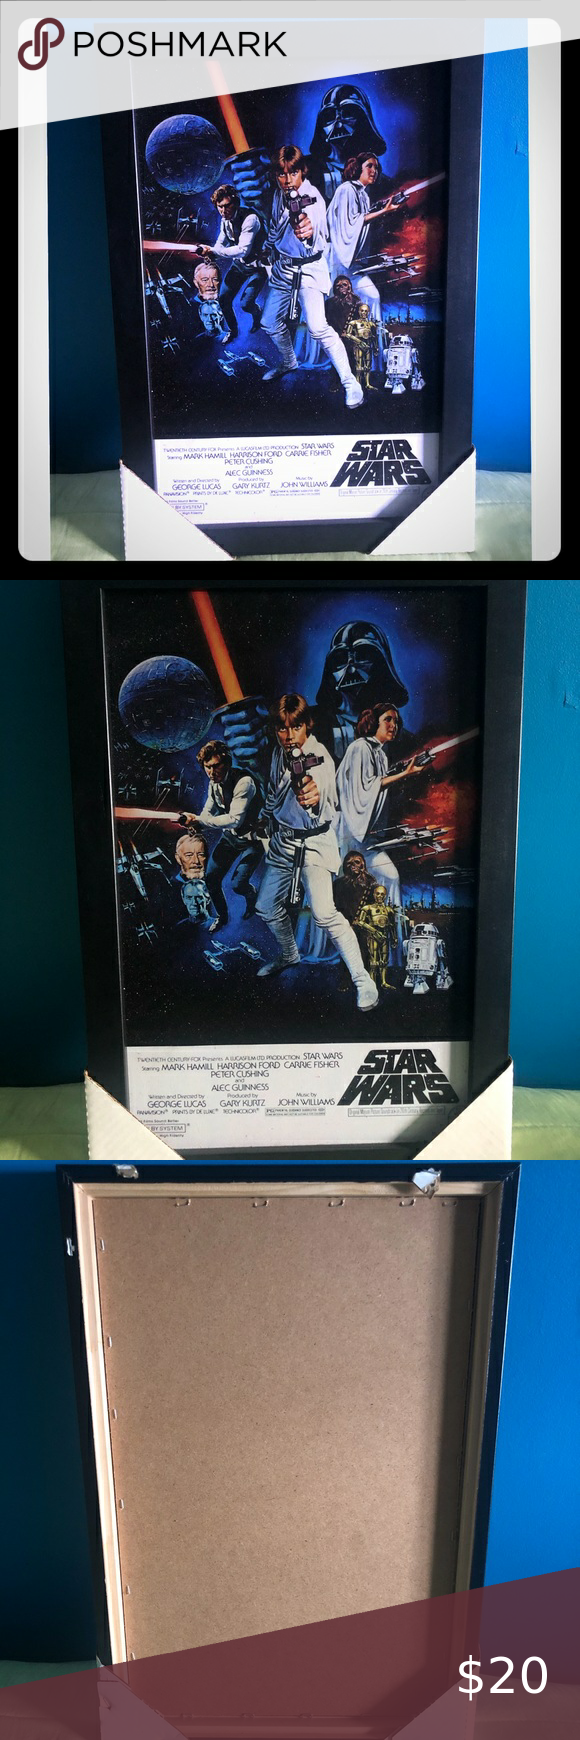 Star Wars Framed Picture New In 2020 Picture Frames New Star Wars Pictures